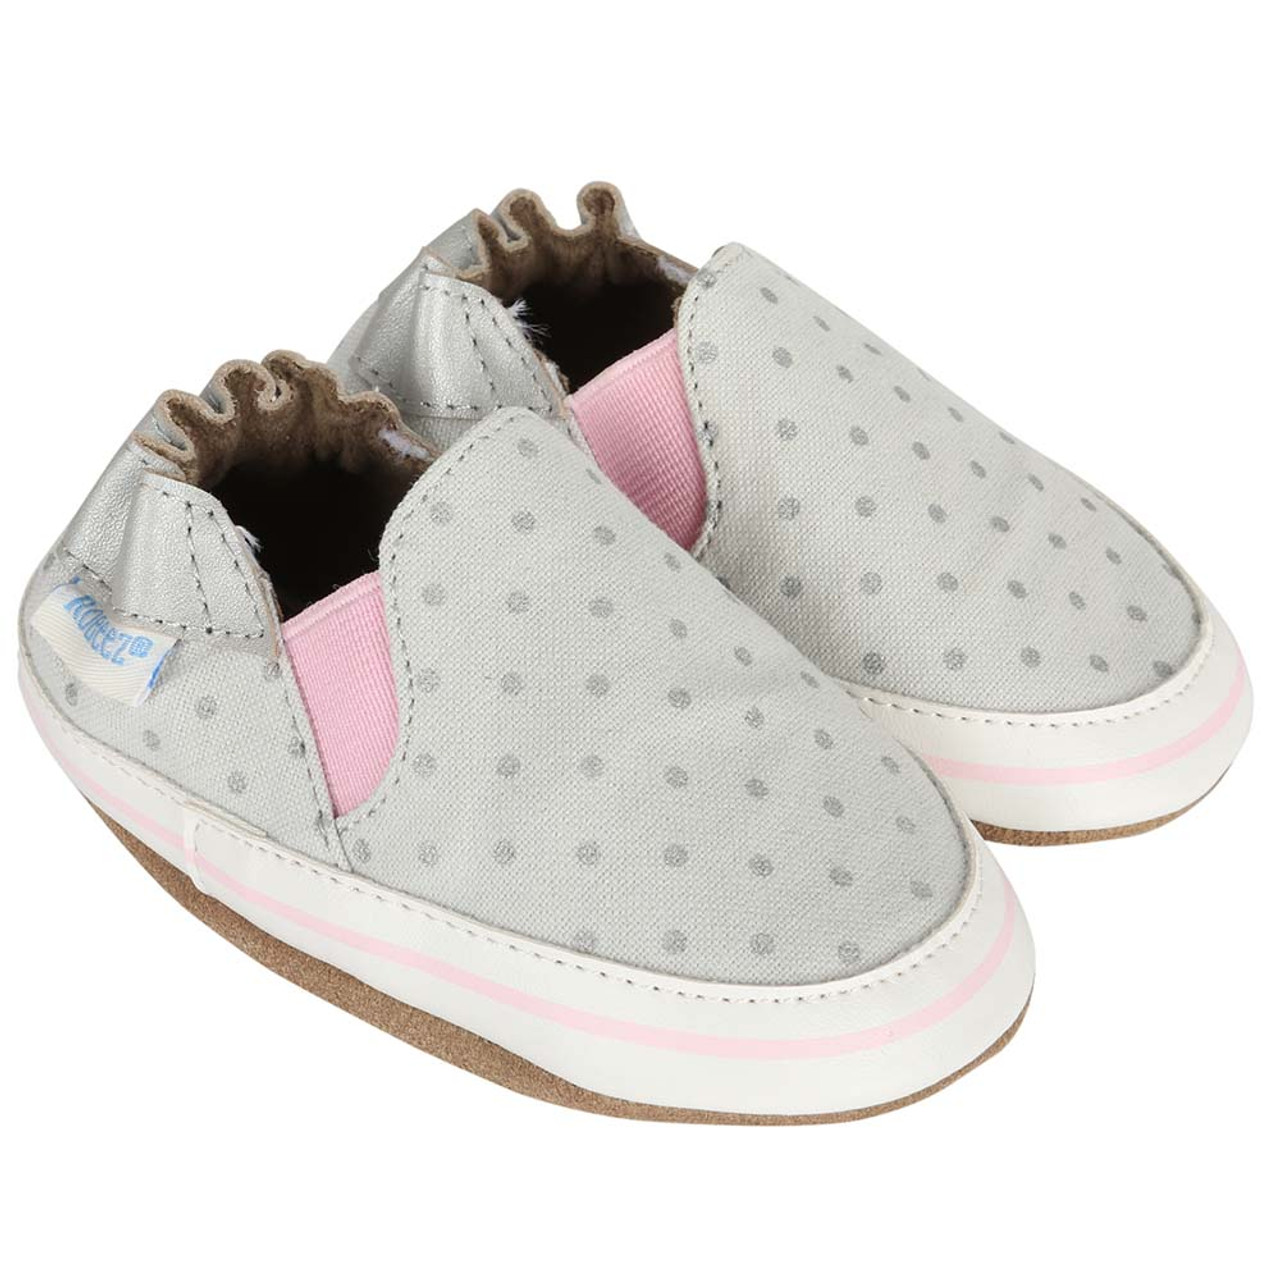 2ecf386d Girls Baby Shoes for ages 0 -24 months. Grey with Grey polka dots.